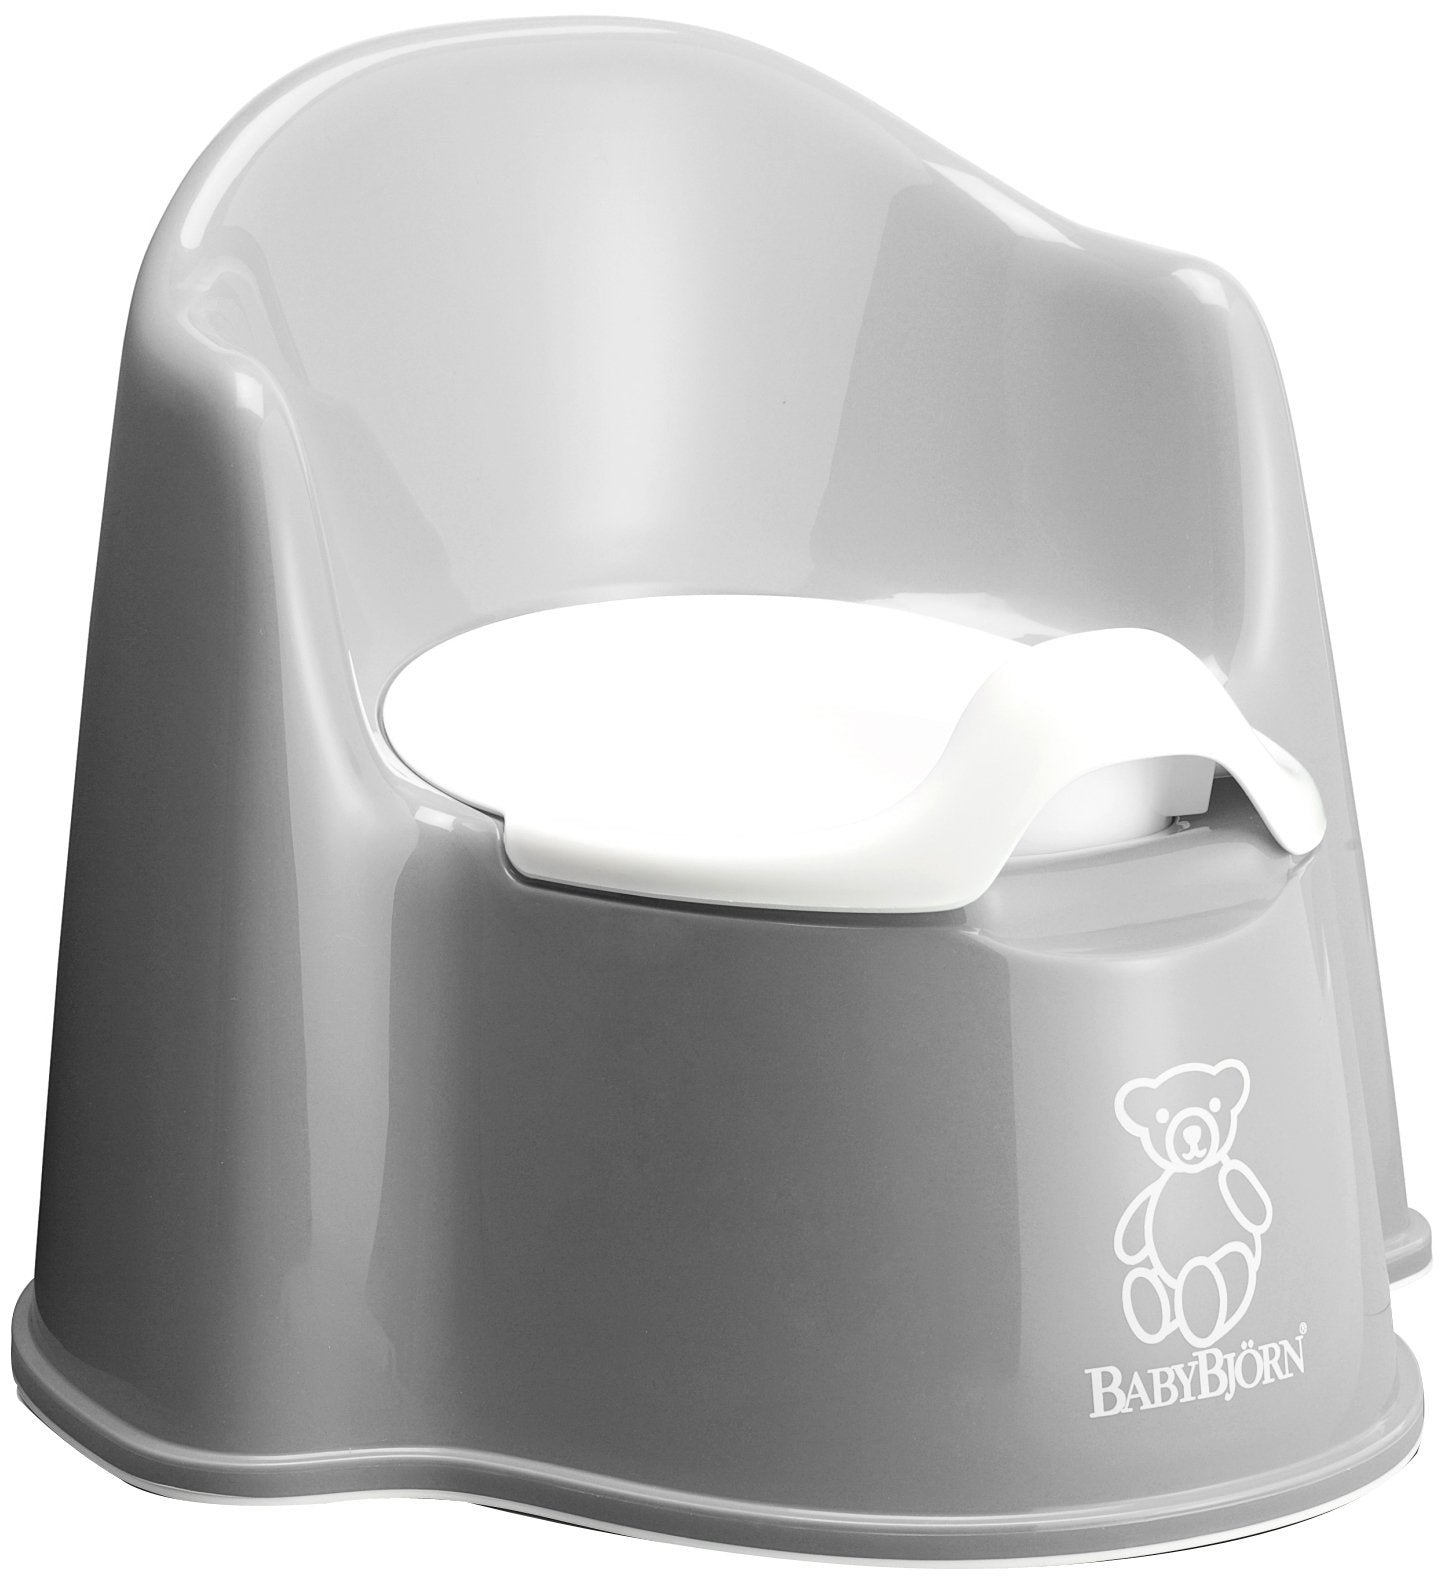 Babybjorn 2019 Potty Chair Grey